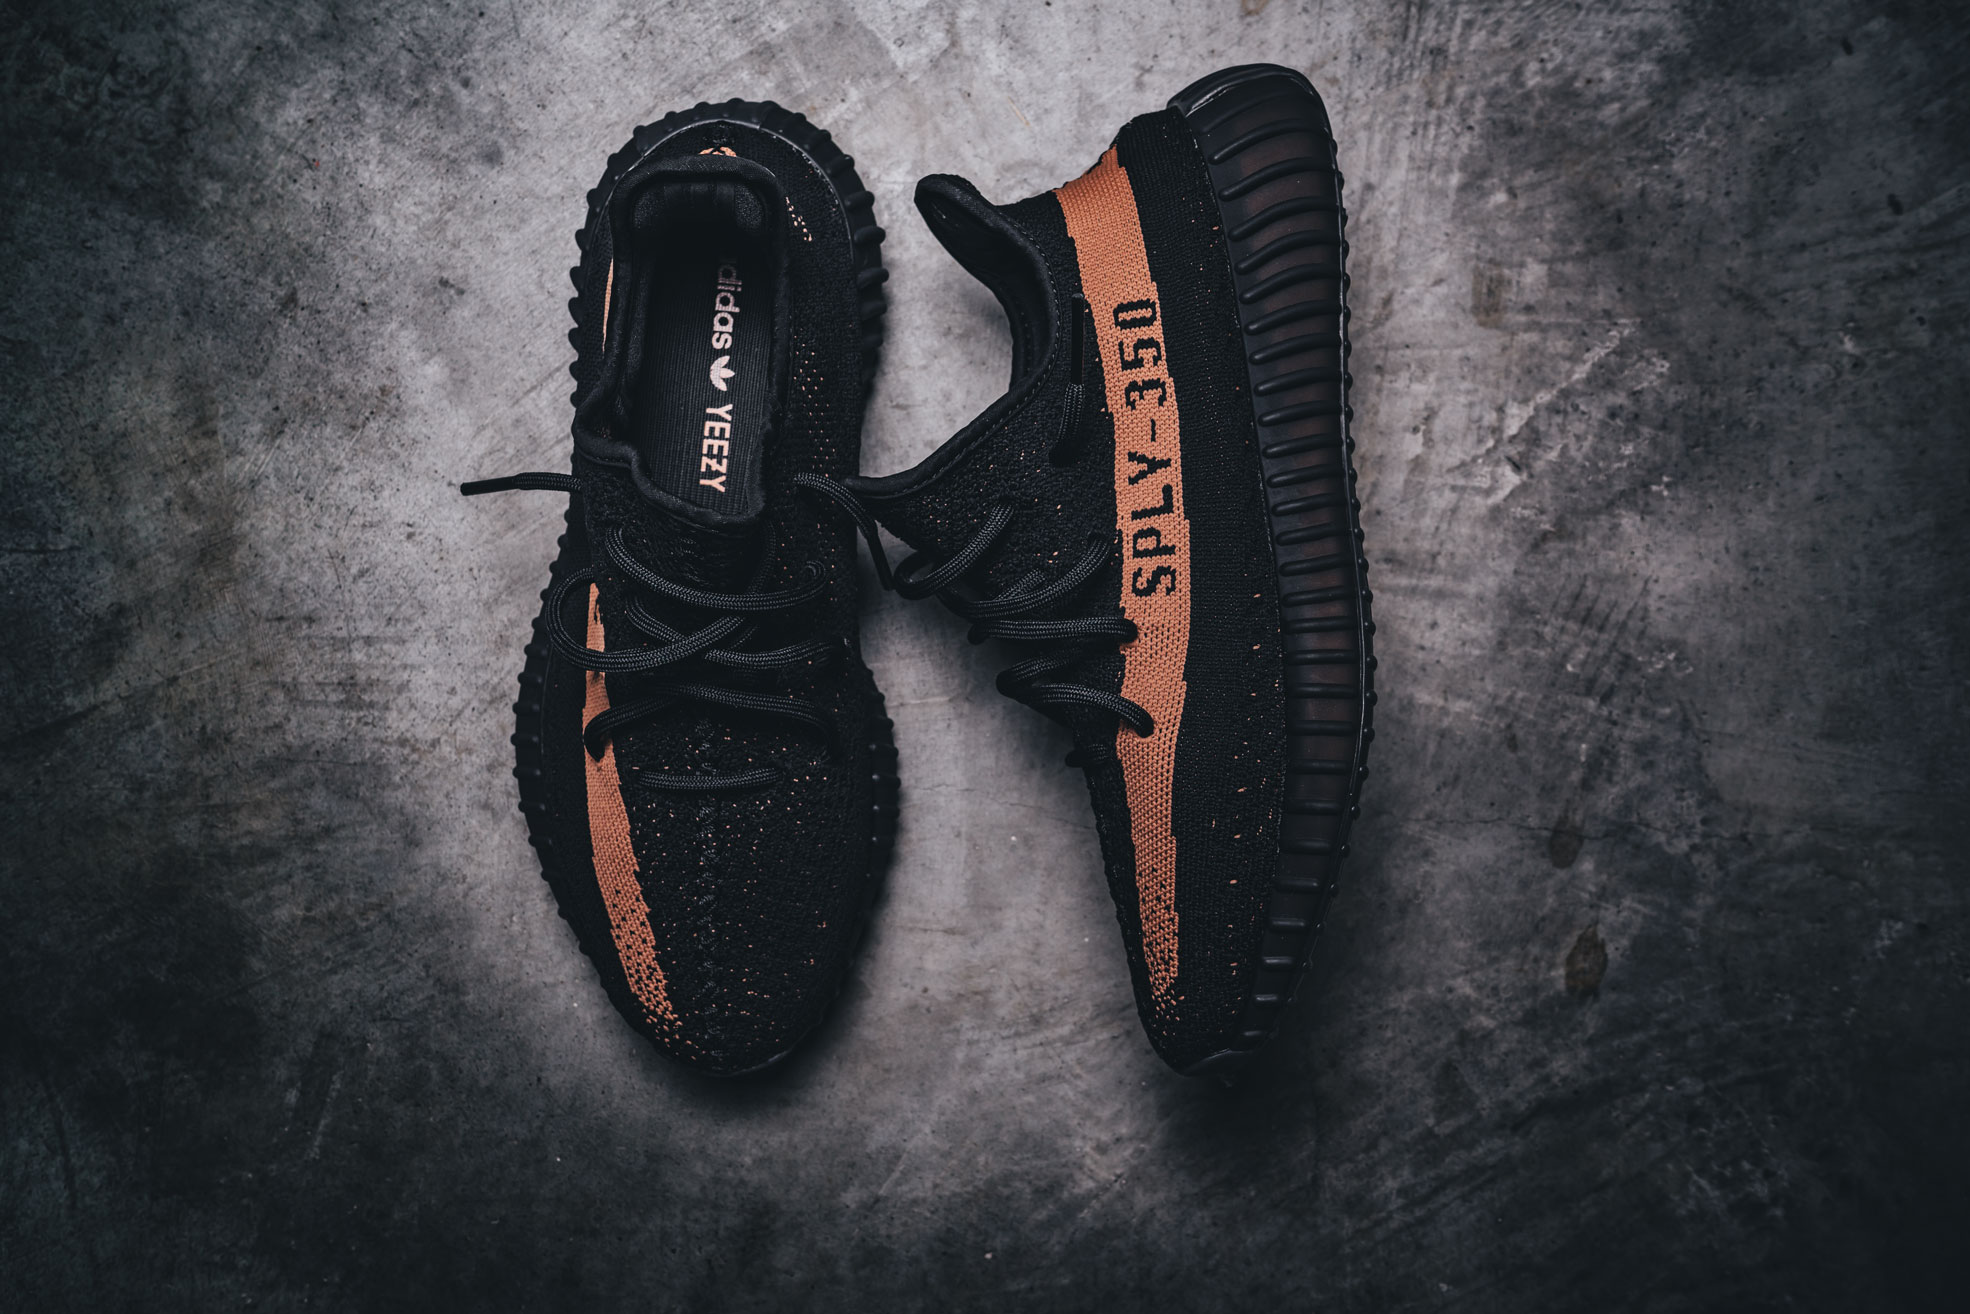 793bf9982d0 Adidas Yeezy Boost 350 V2 Copper Red Green Schuh 1970x1314